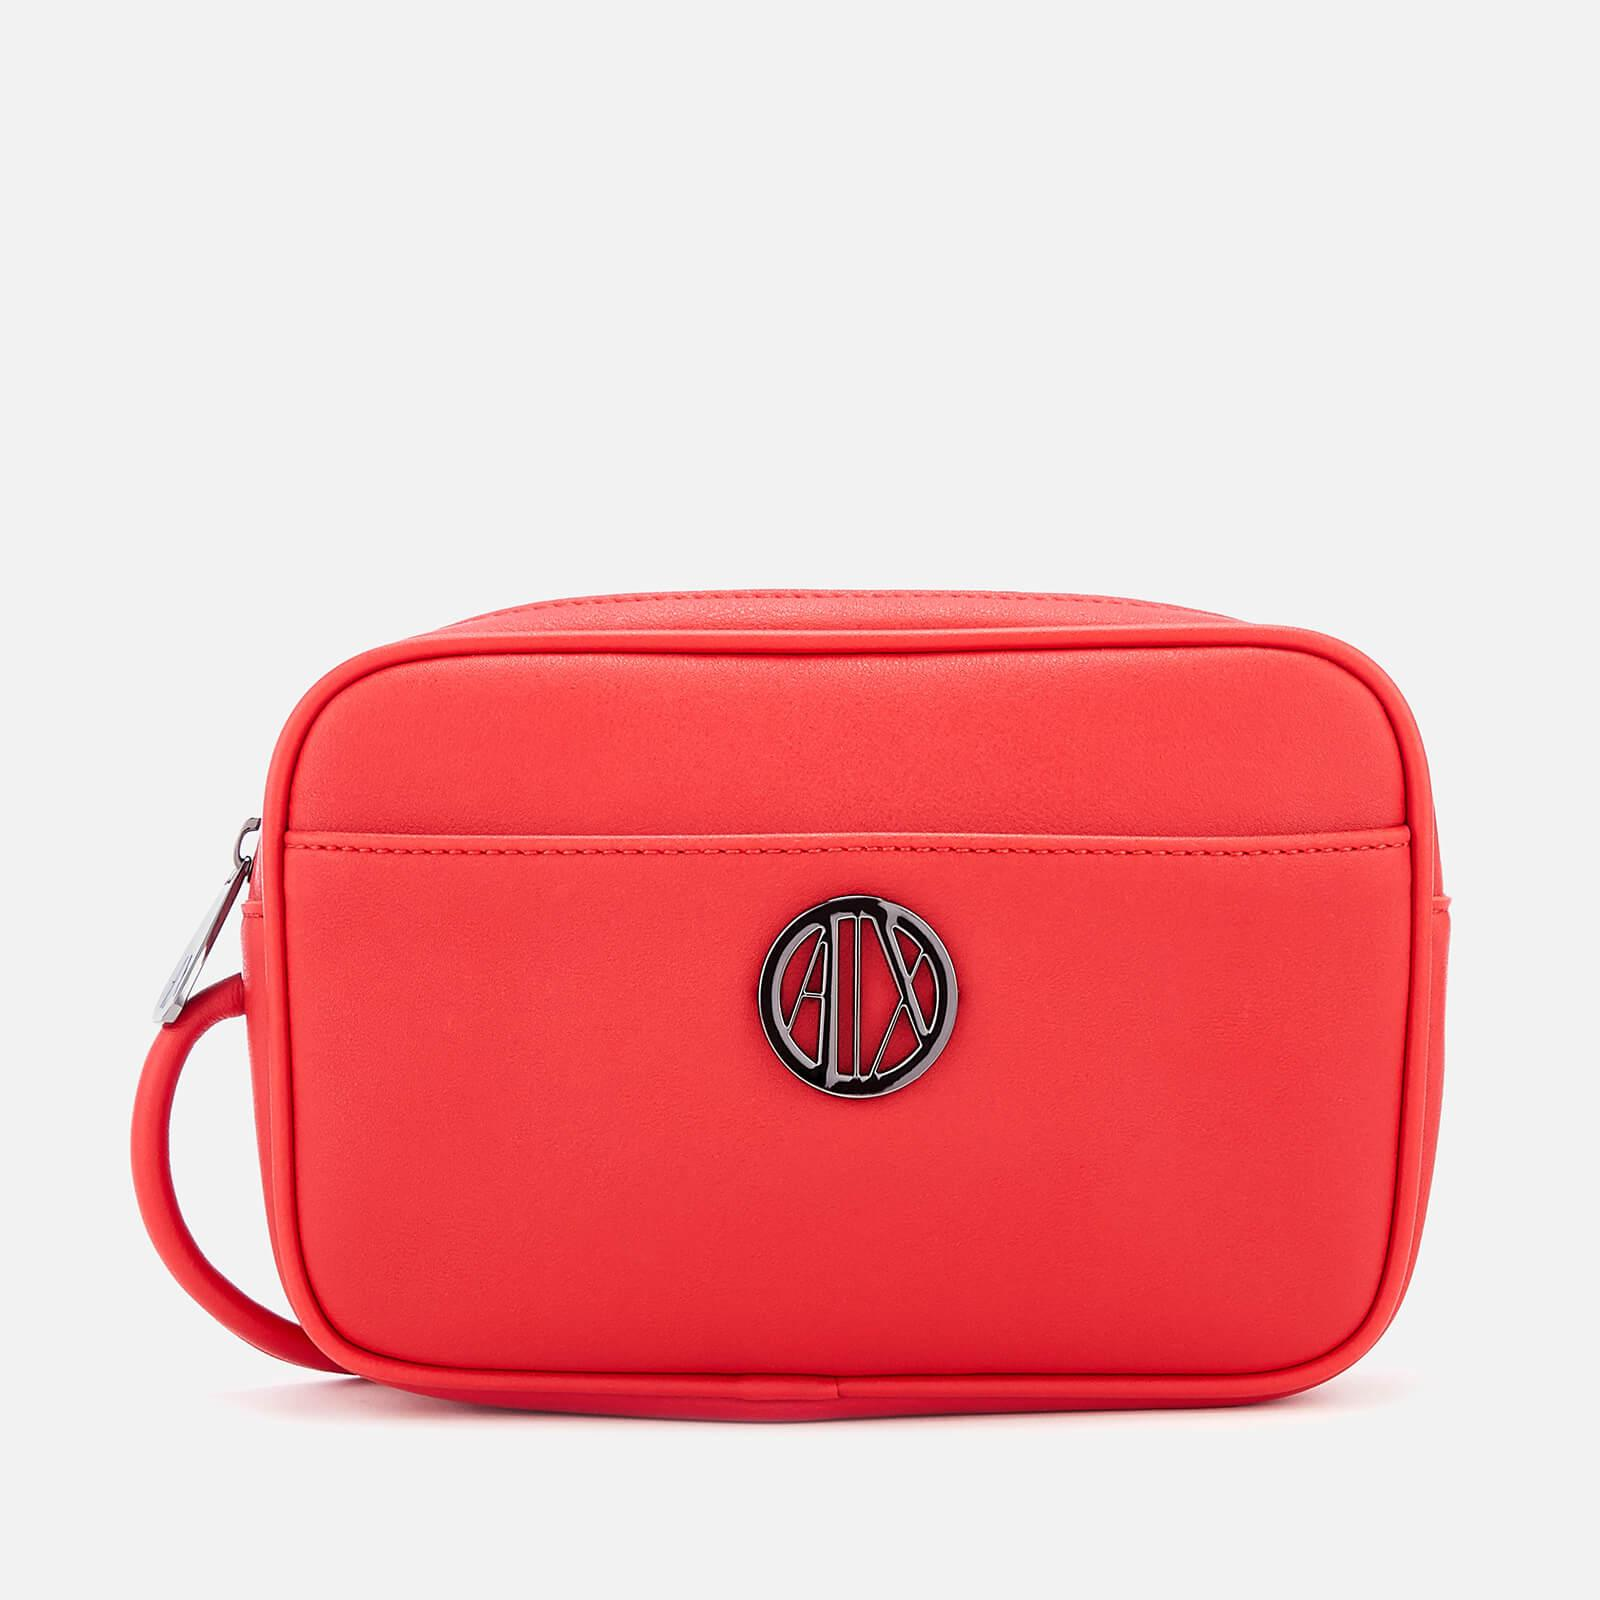 028421f55a46 Lyst - Armani Exchange Small Logo Cross Body Bag in Red